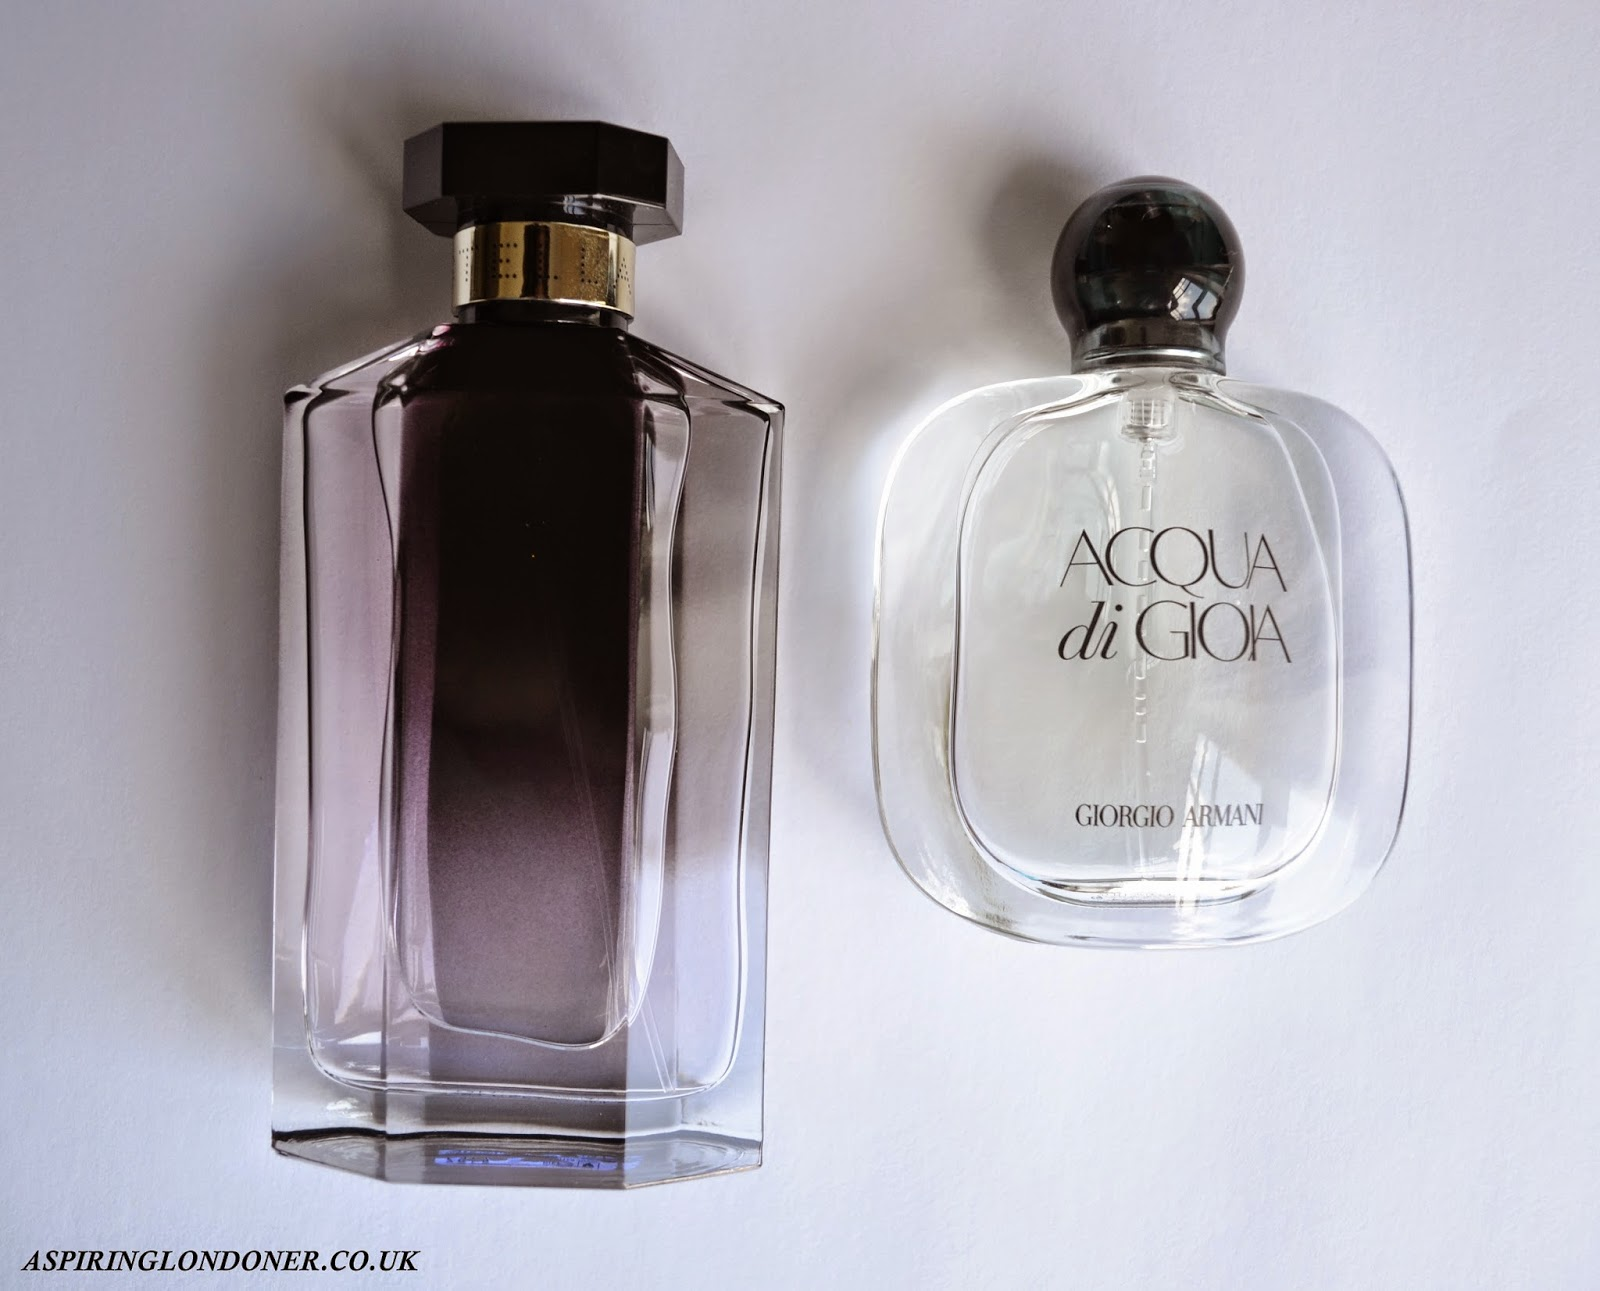 Mother's Day Fragrance Gift Guide ft. Stella, Giorgio Armani, The Body Shop - Aspiring Londoner